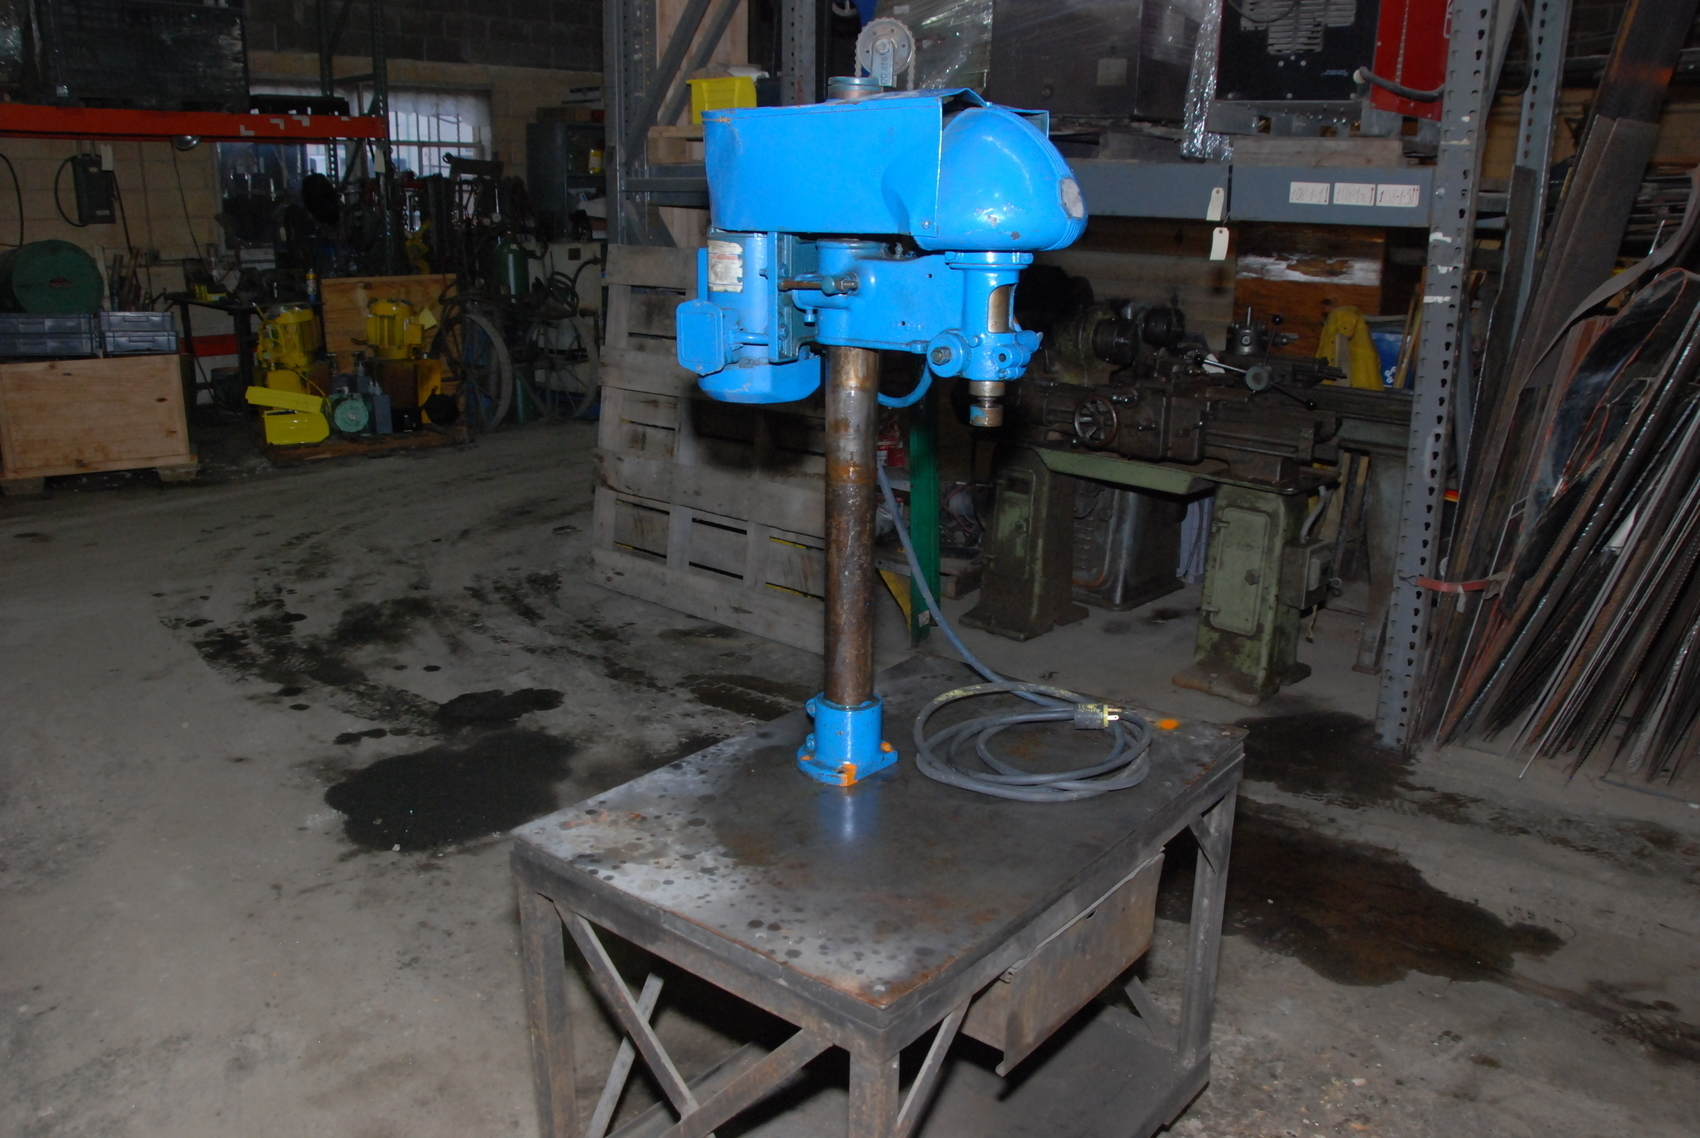 Delta Rockwell Drill Press,on cart,1PHASE,115/230V,W/Table 36*24*30